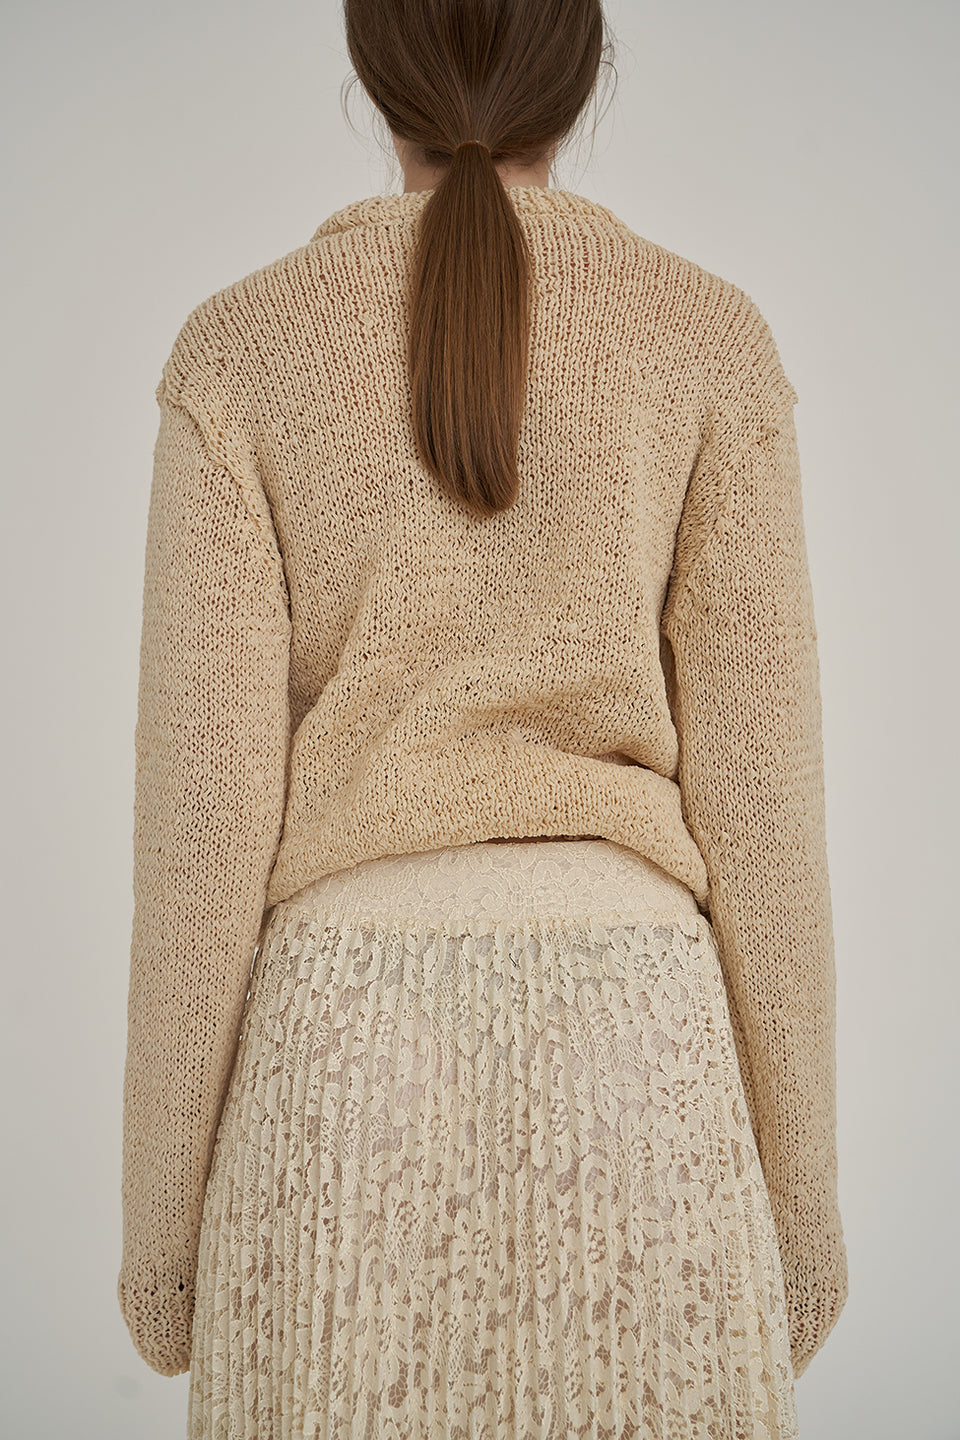 Eilish Sweater